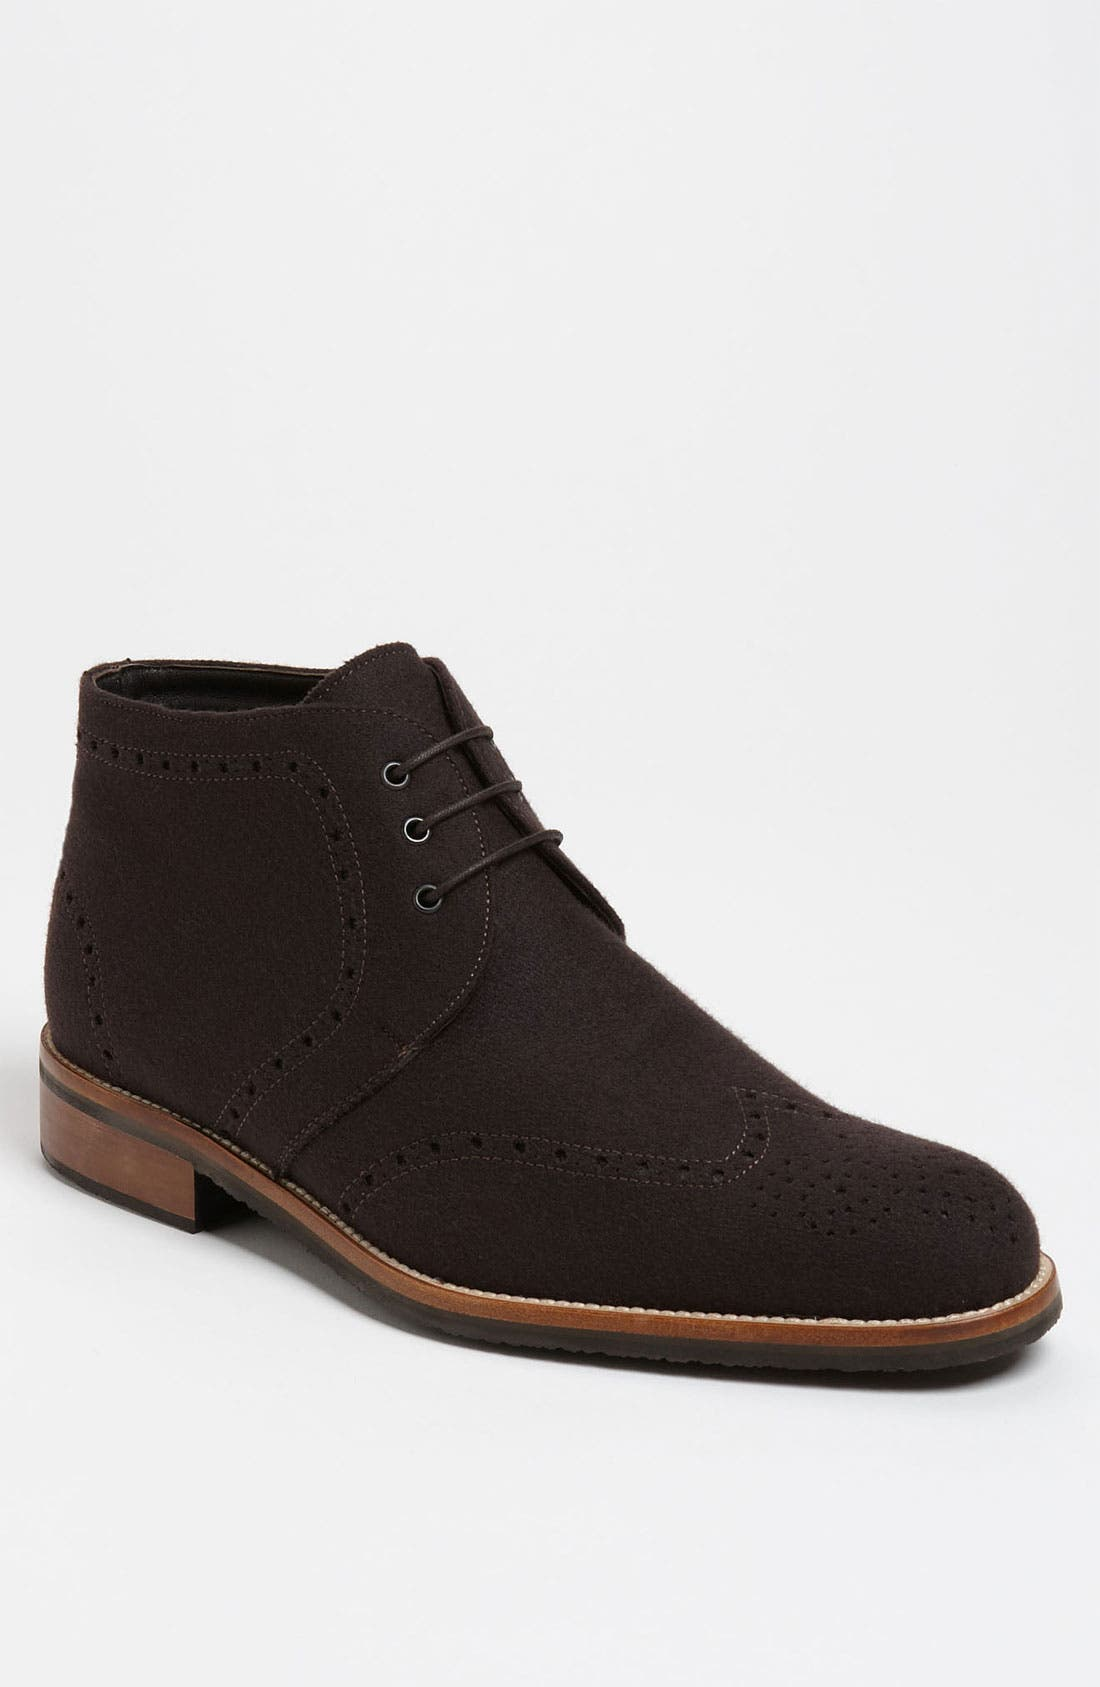 Alternate Image 1 Selected - Thomas Dean Wool Wingtip Chukka Boot